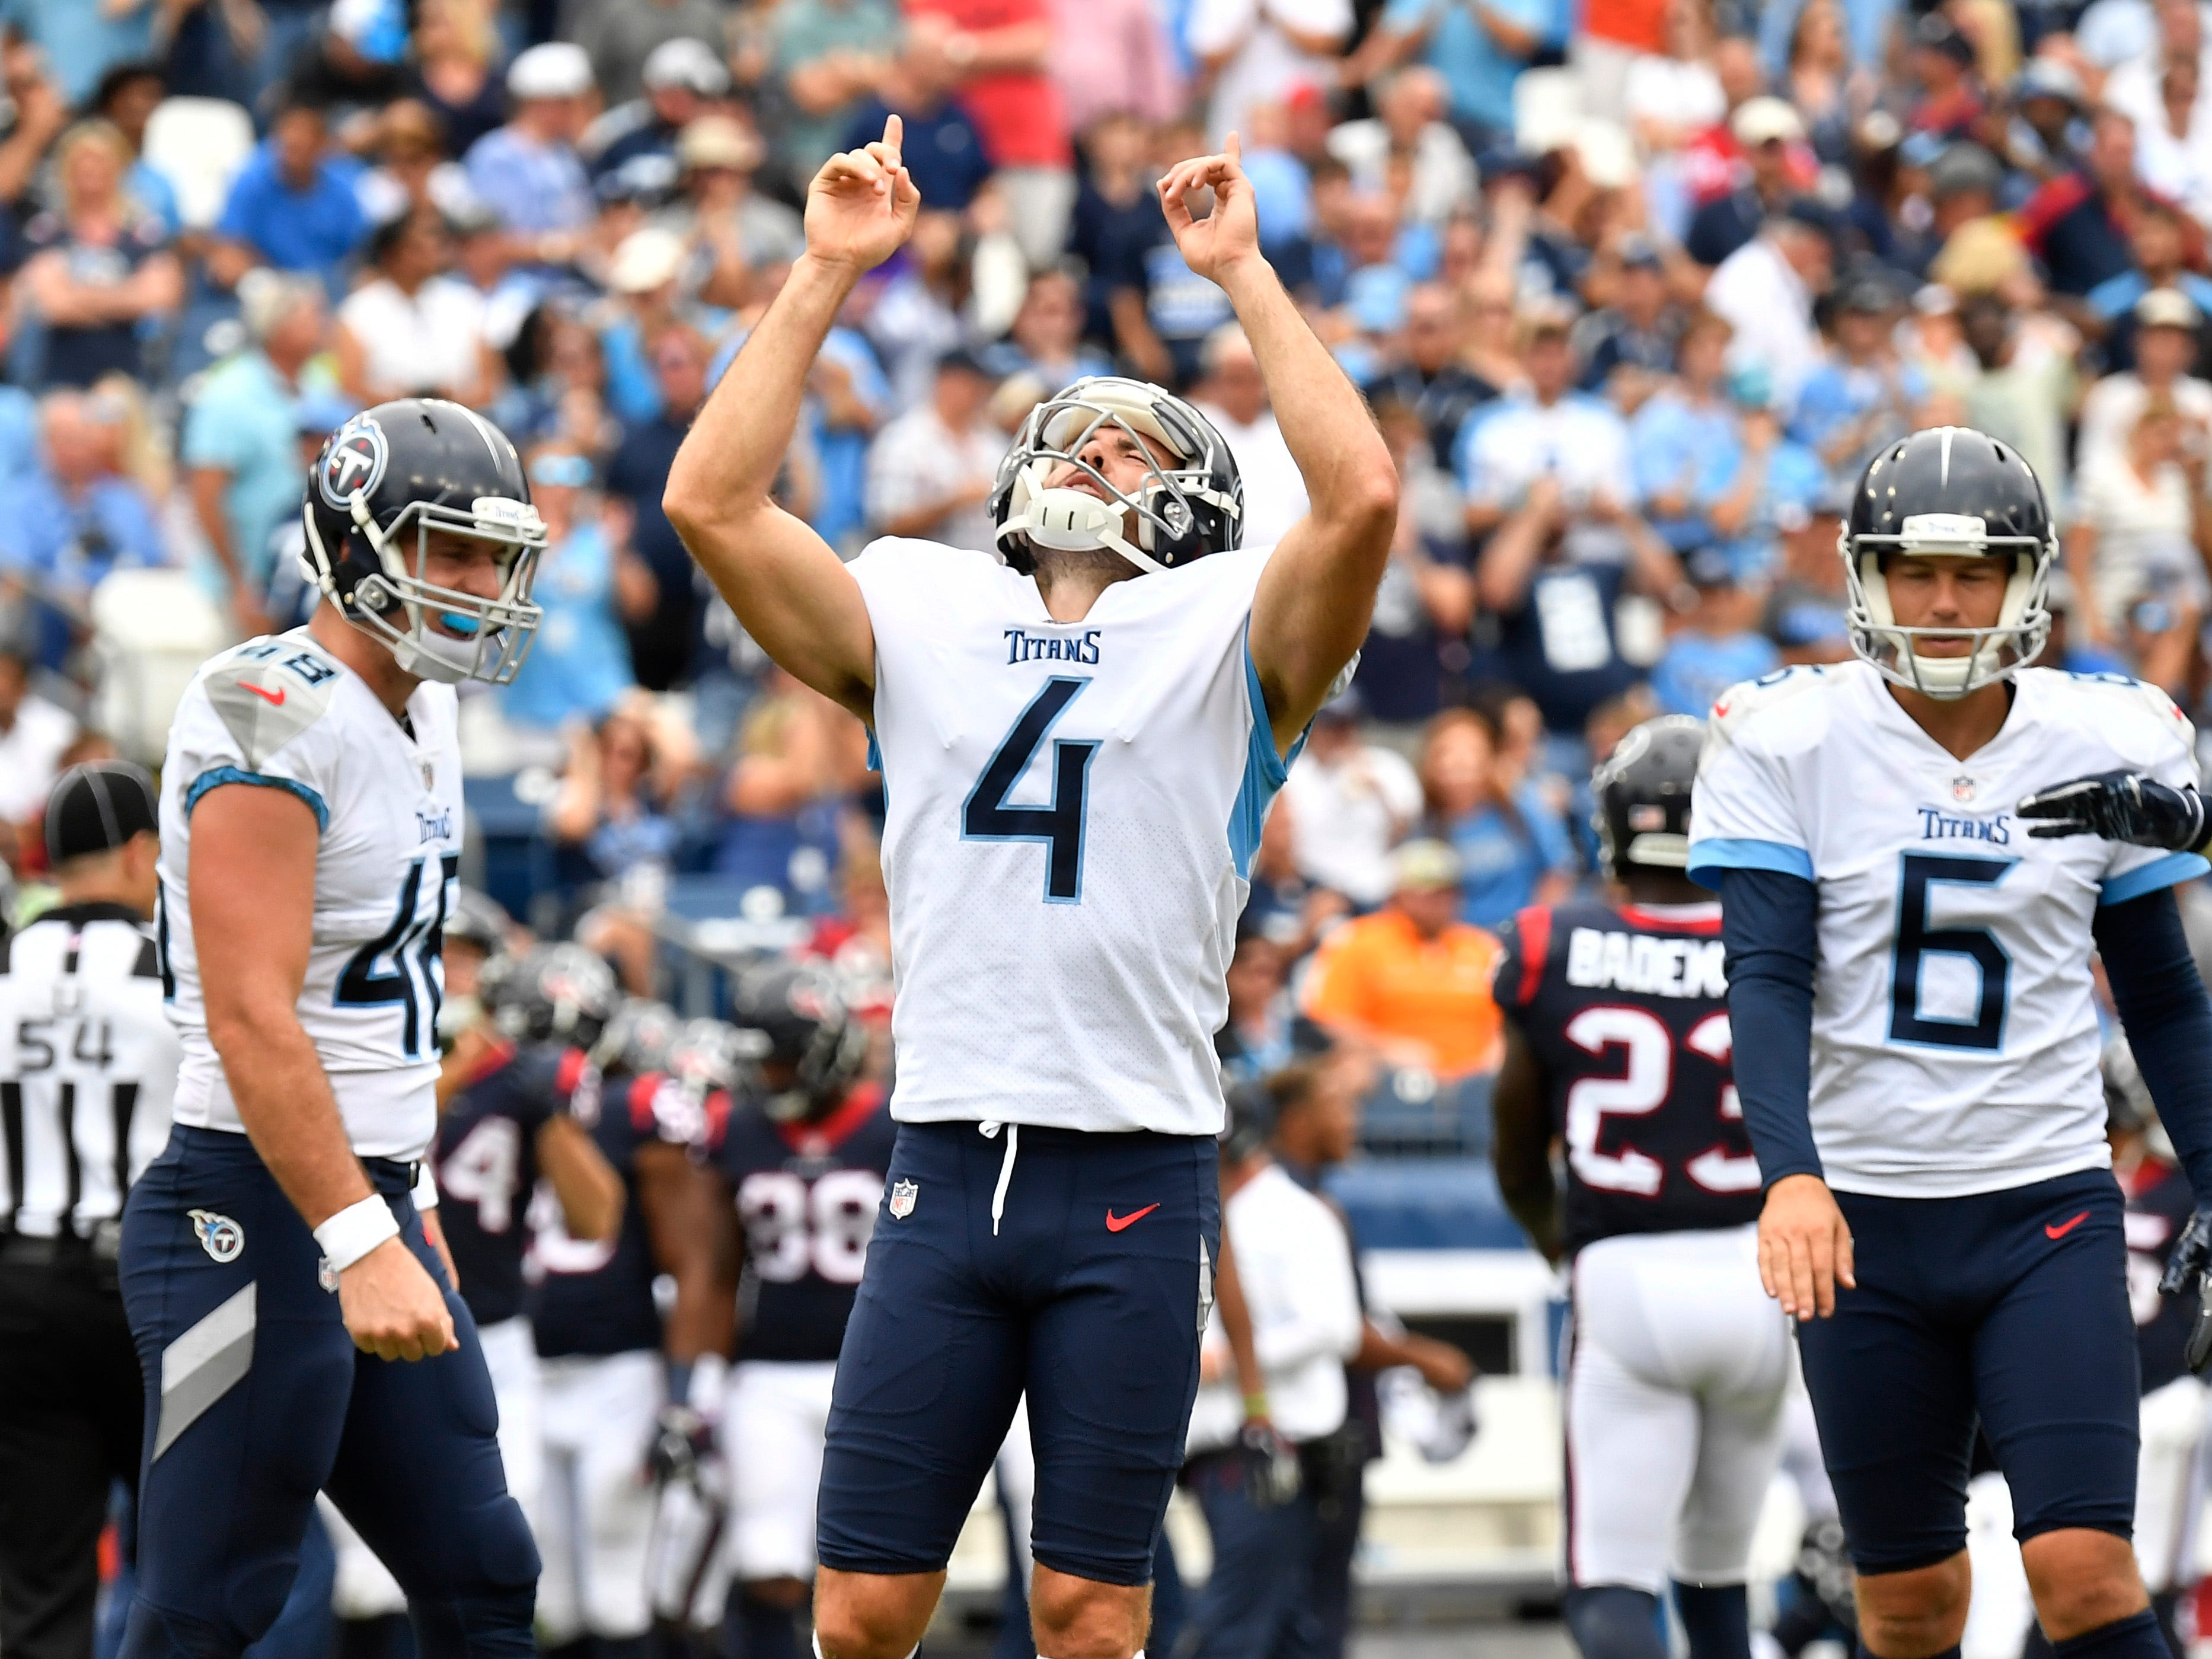 Titans place kicker Ryan Succop (4) celebrates his game-winning field goal to beat the Texans, 20-17, at Nissan Stadium Sunday, Sept. 16, 2018, in Nashville, Tenn.